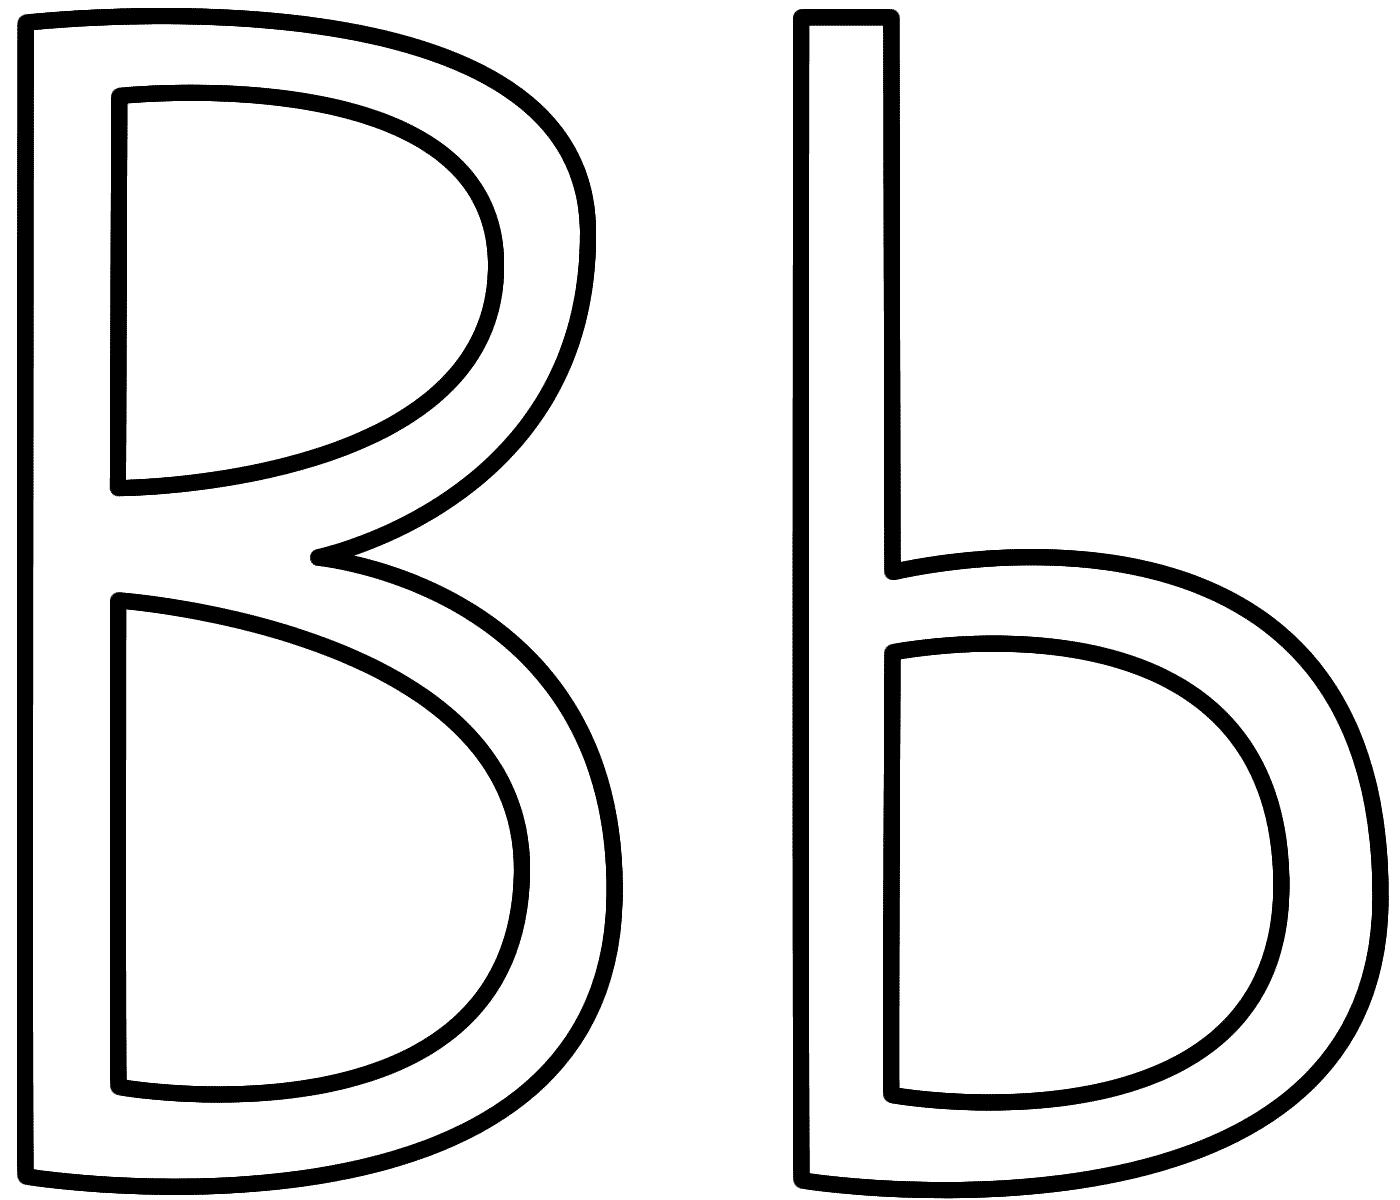 letter-b-pictures-big and small